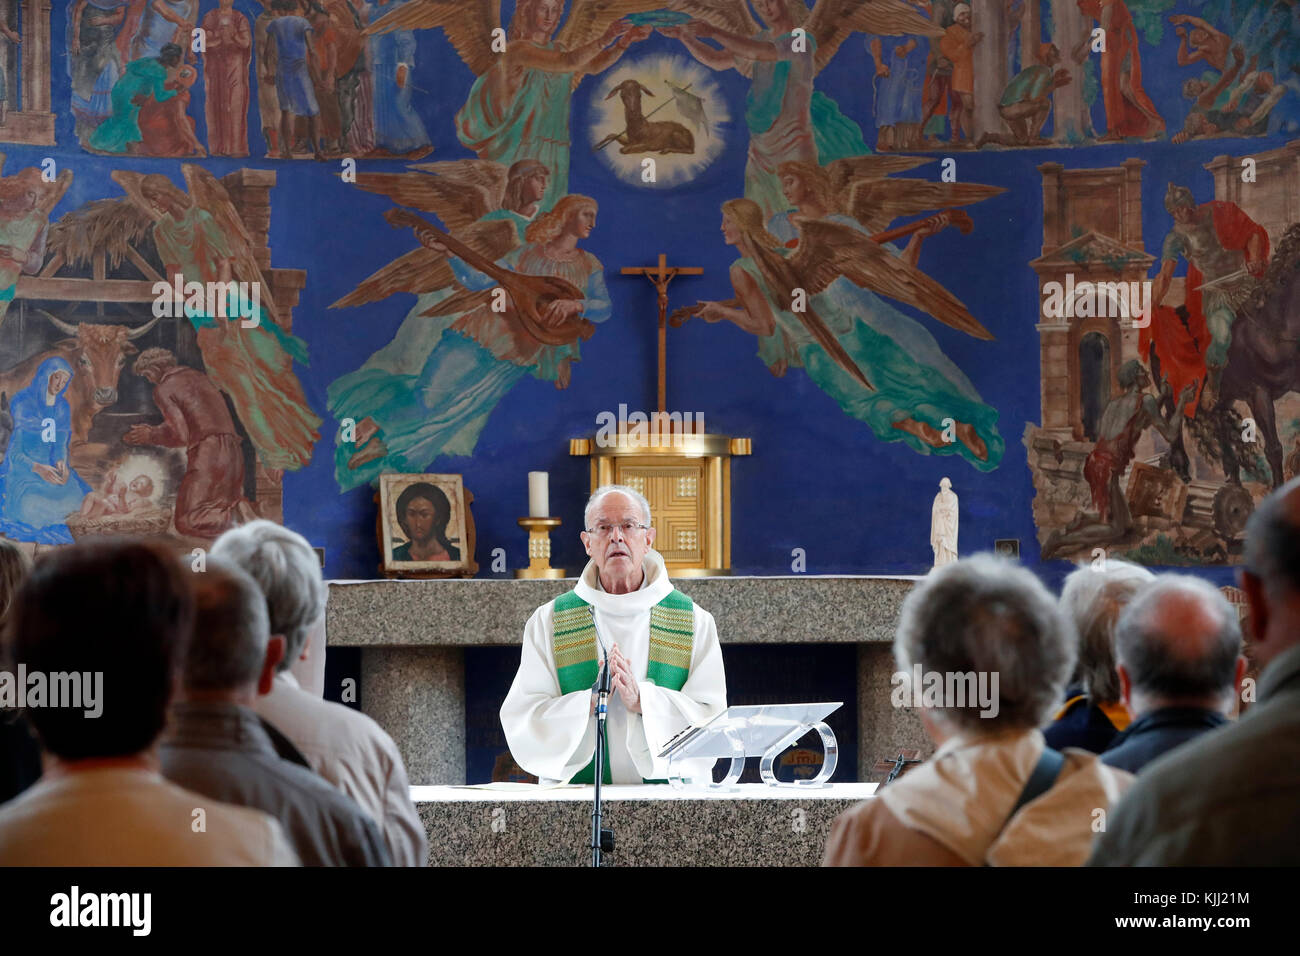 Canapé Italien St Priest Catholic Mass Stock Photos And Catholic Mass Stock Images